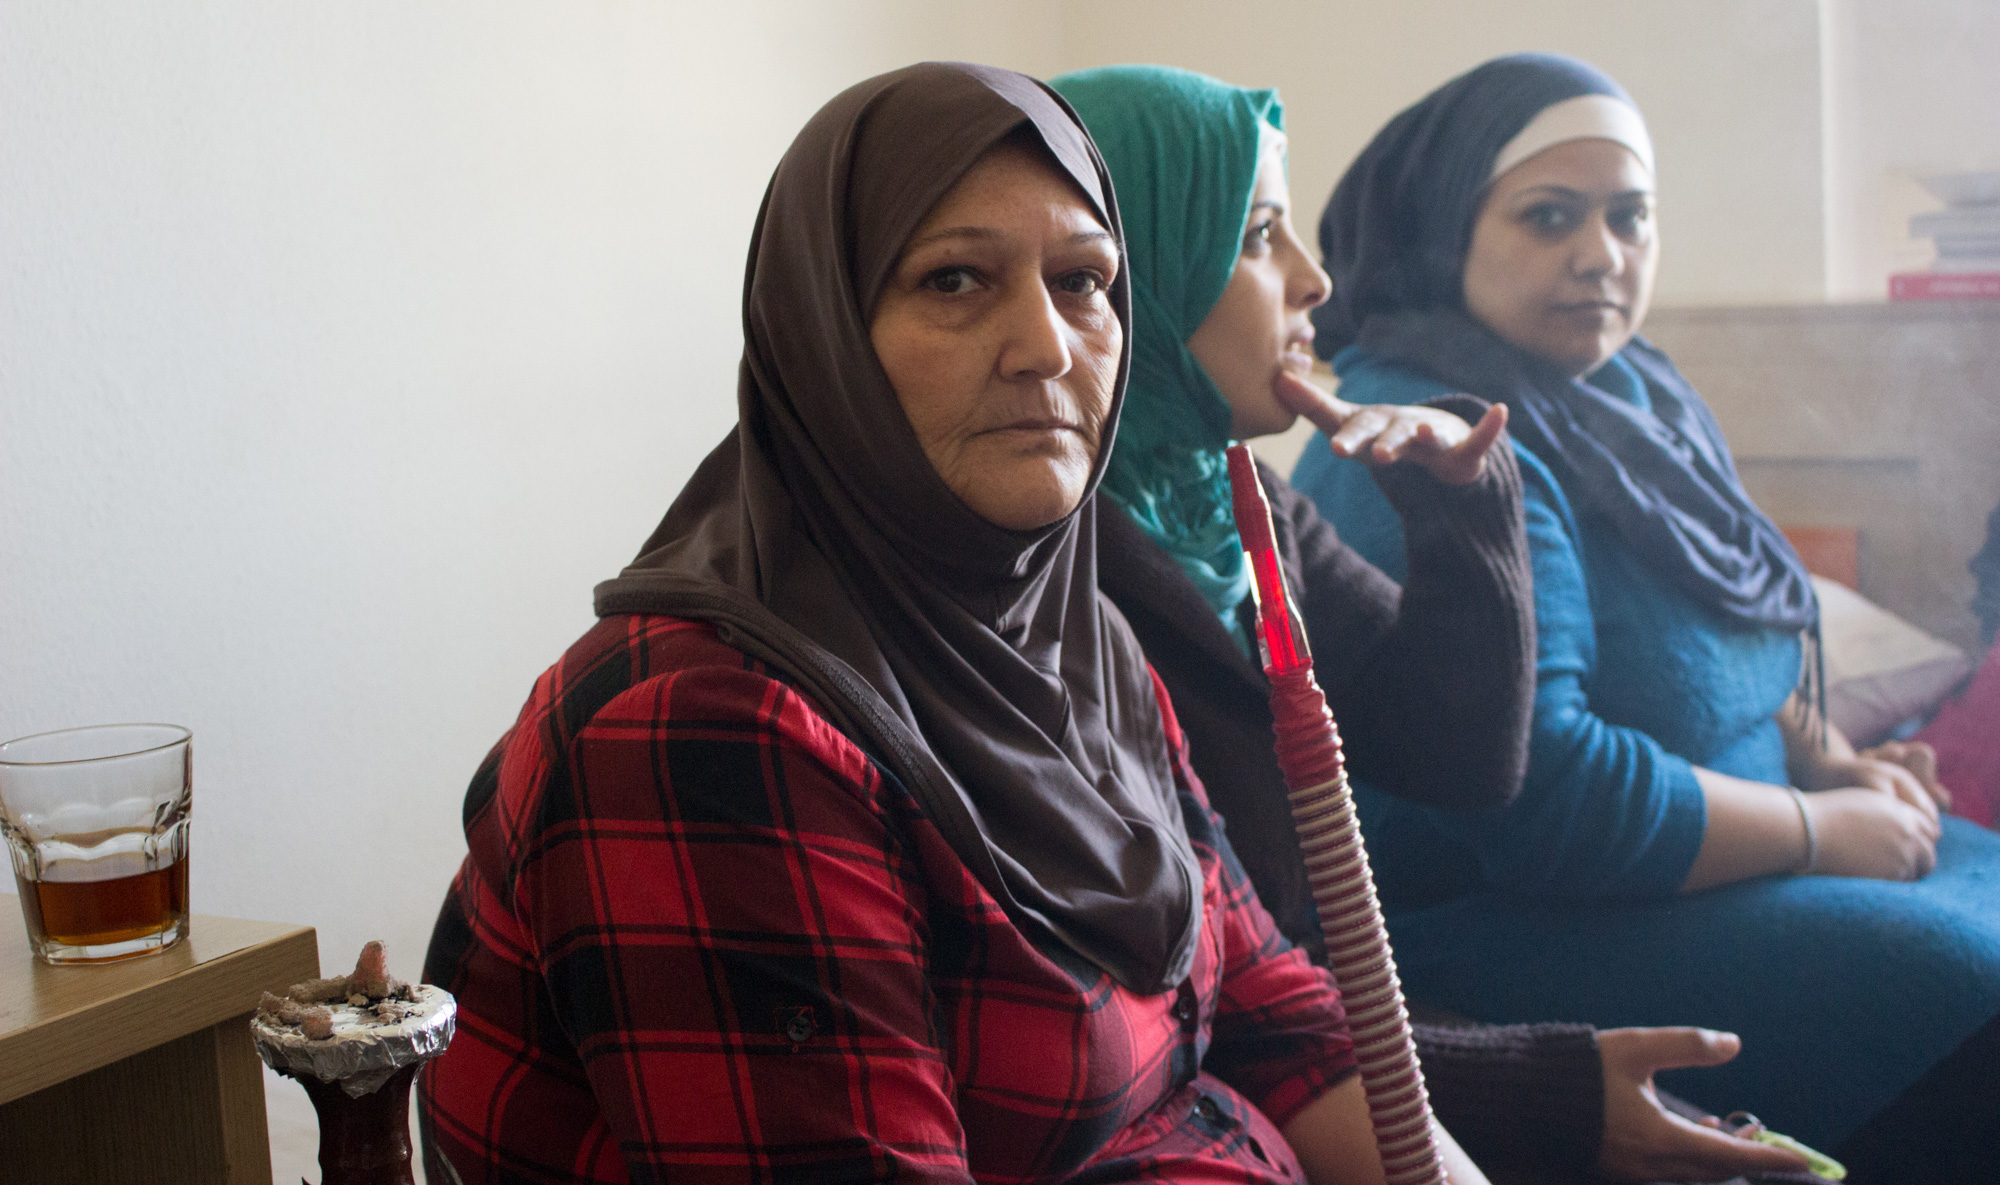 Grasping a hookah pipe, Syrian refugee Hanifa Hussein sits on a twin bed with her older daughter (right) and family friend (left). Smoking is a common way adult residents pass time at the Sindos apartment complex outside Thessaloniki, Greece (Photo by Catherine Clark/GroundTruth)